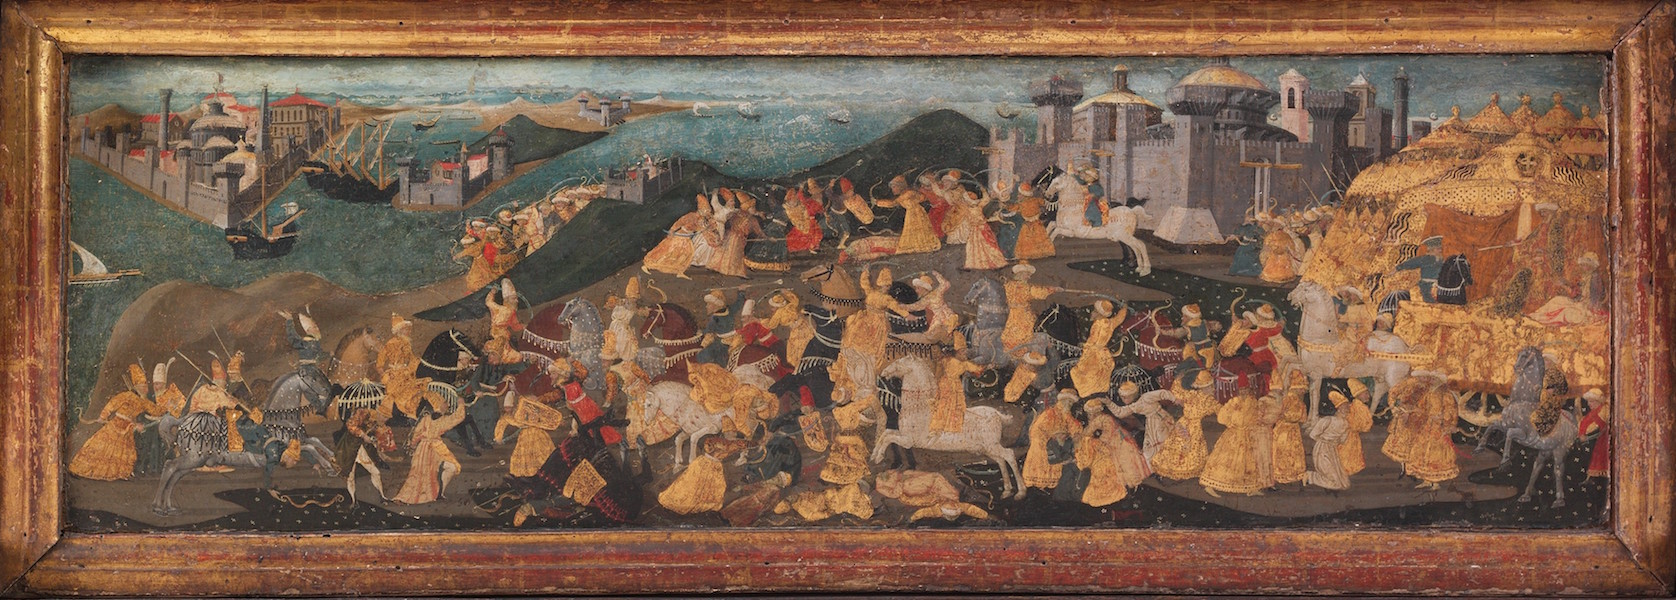 Front Panel depicting the Conquest of Trebizond, Marco del Buono Giamberti and Apollonio di Giovanni di Tomaso, Cassone with the Conquest of Trebizond, 1460s, tempera, gold and silver on wood, 9 1/2 x 77 x 32 7/8 inches / 100.3 x 195.6 x 83.5 cm (The Metropolitan Museum of Art)